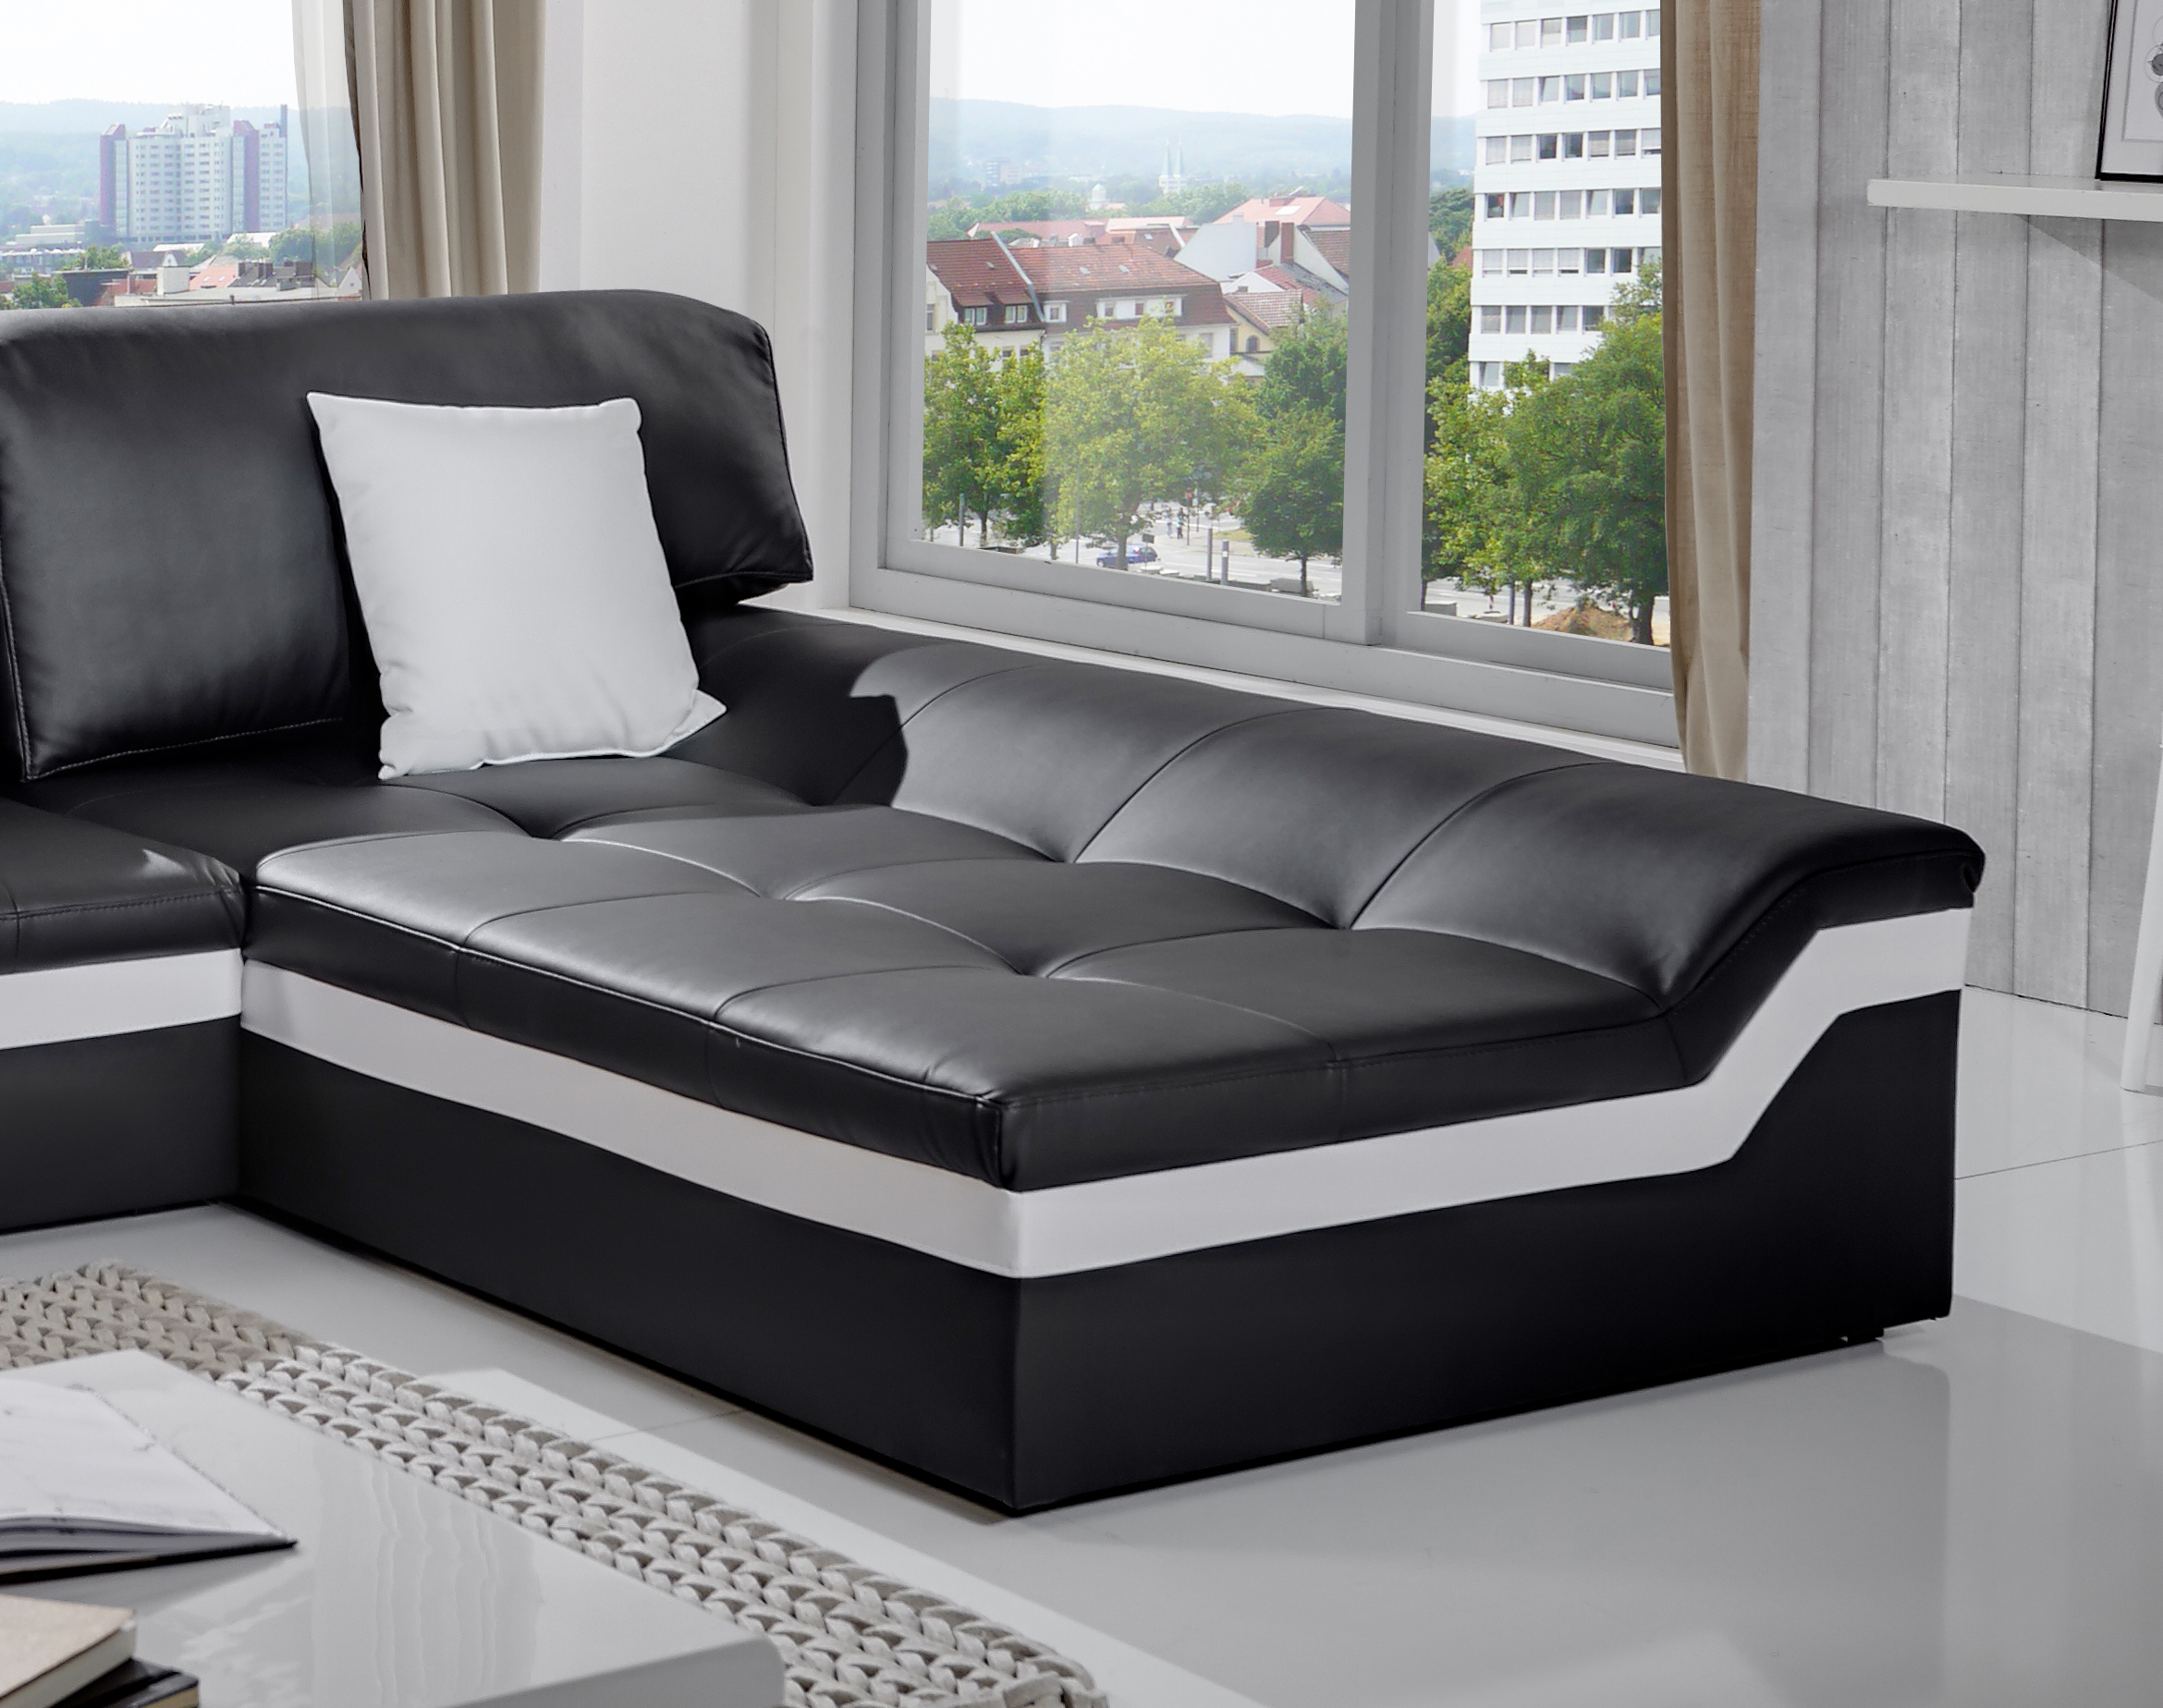 sam ecksofa grau stoff sofa mistico 270 x 220 cm auf lager. Black Bedroom Furniture Sets. Home Design Ideas